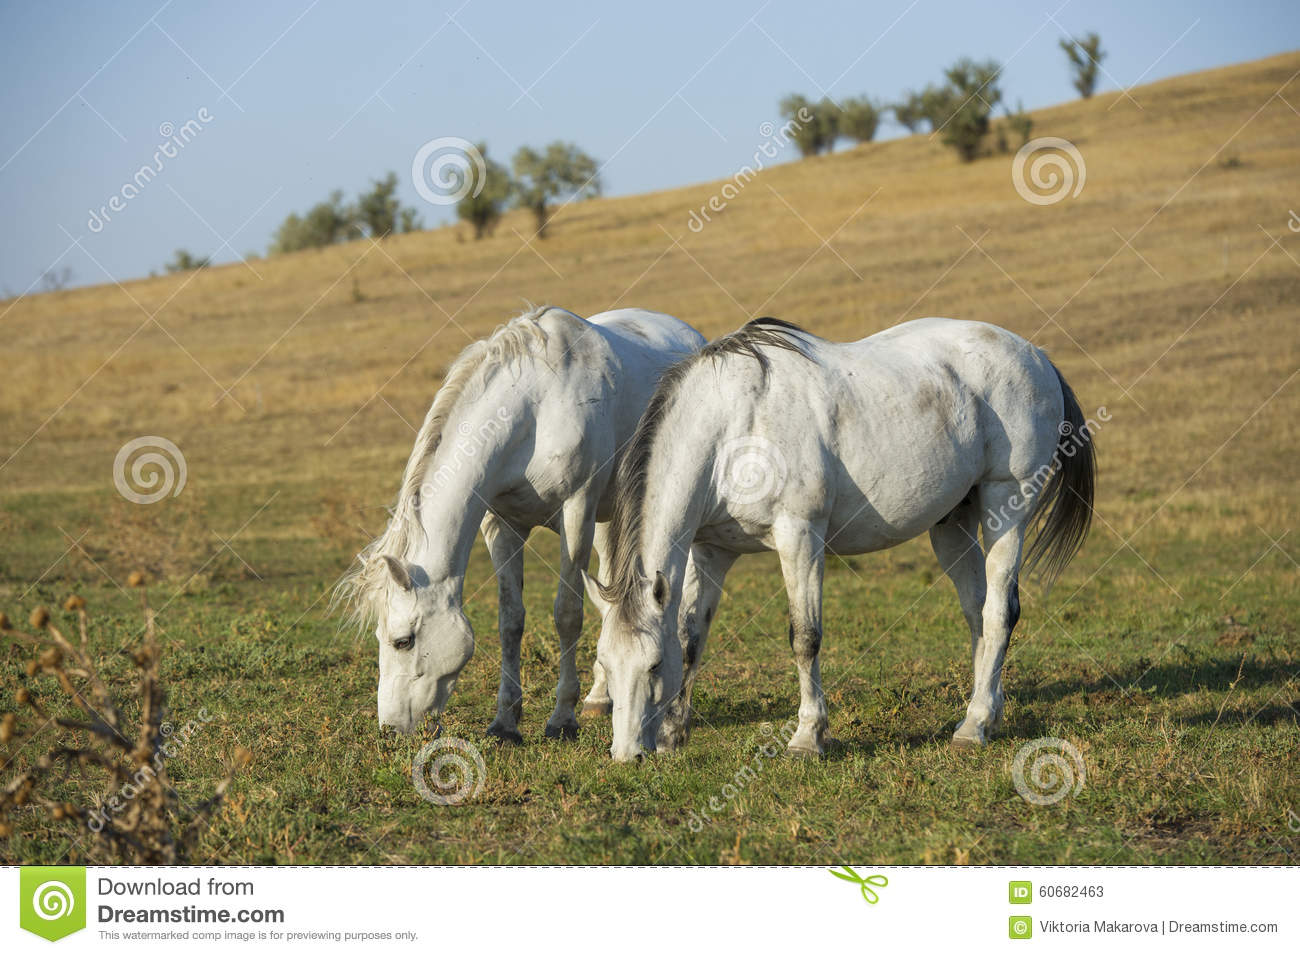 Two white horses portrait on natural background